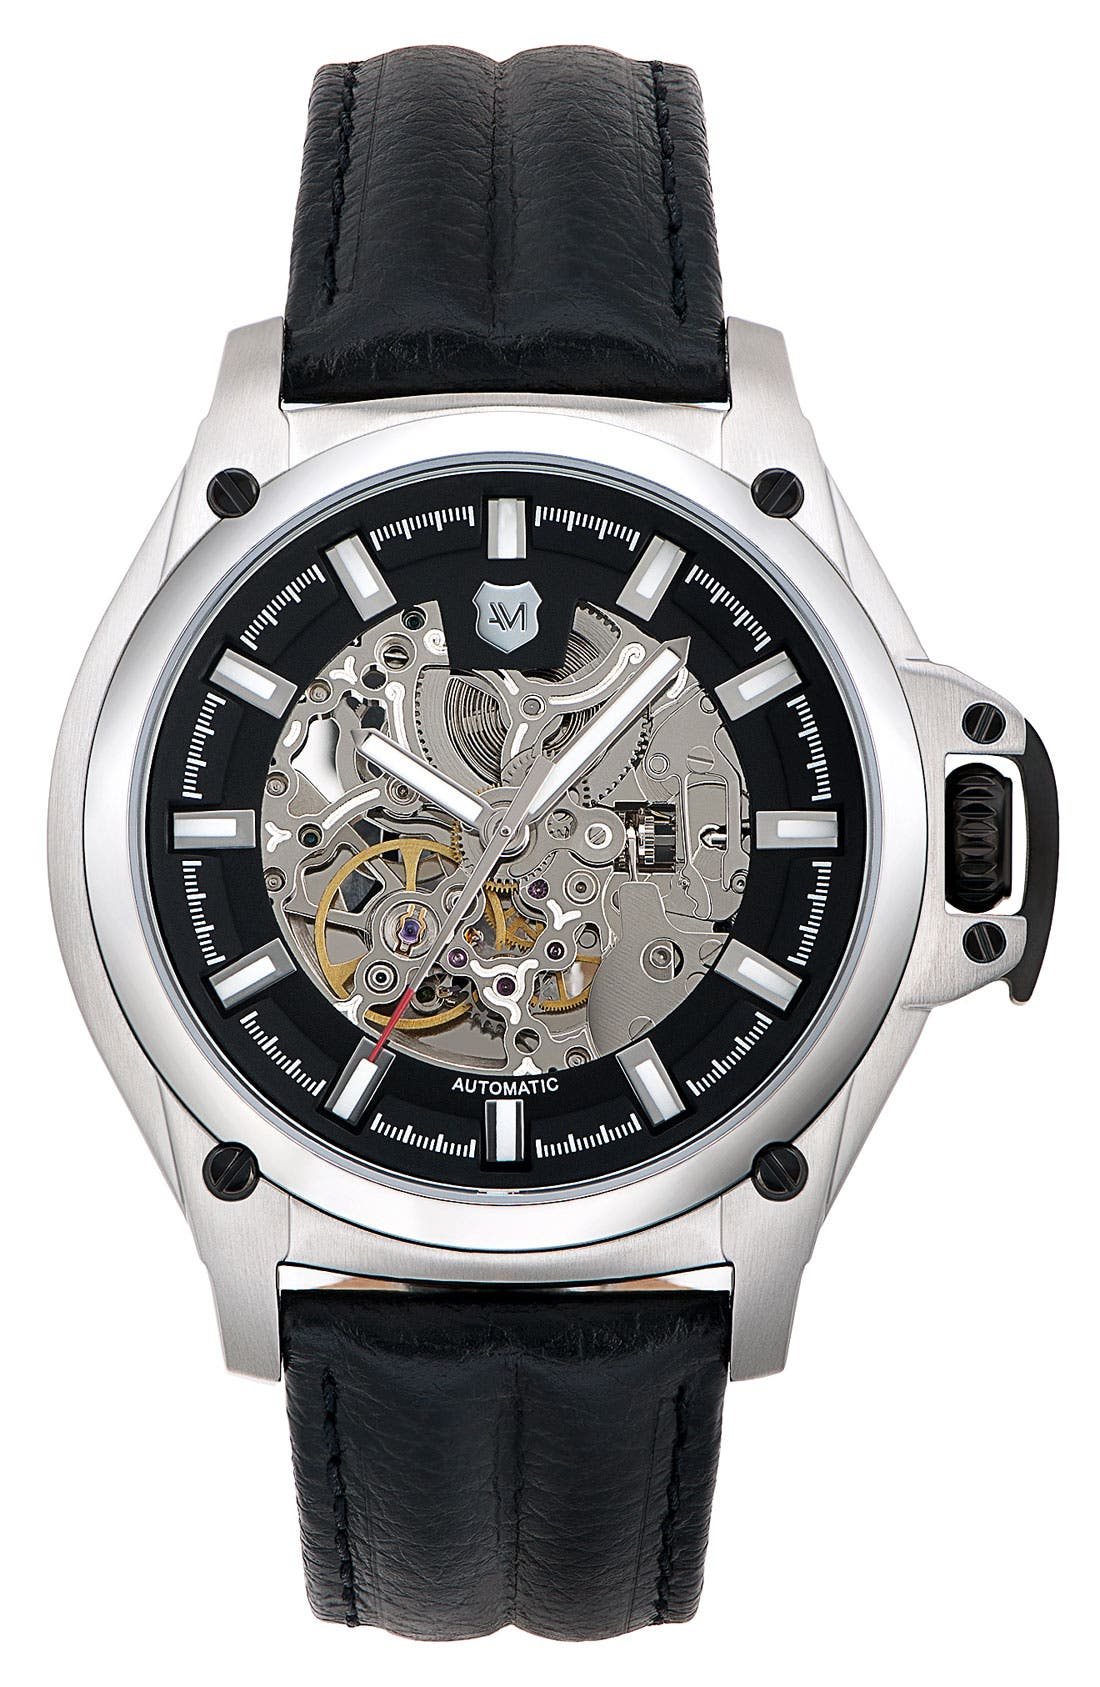 Main Image - Andrew Marc Watches 'G-III Pro' Automatic Leather Strap Watch